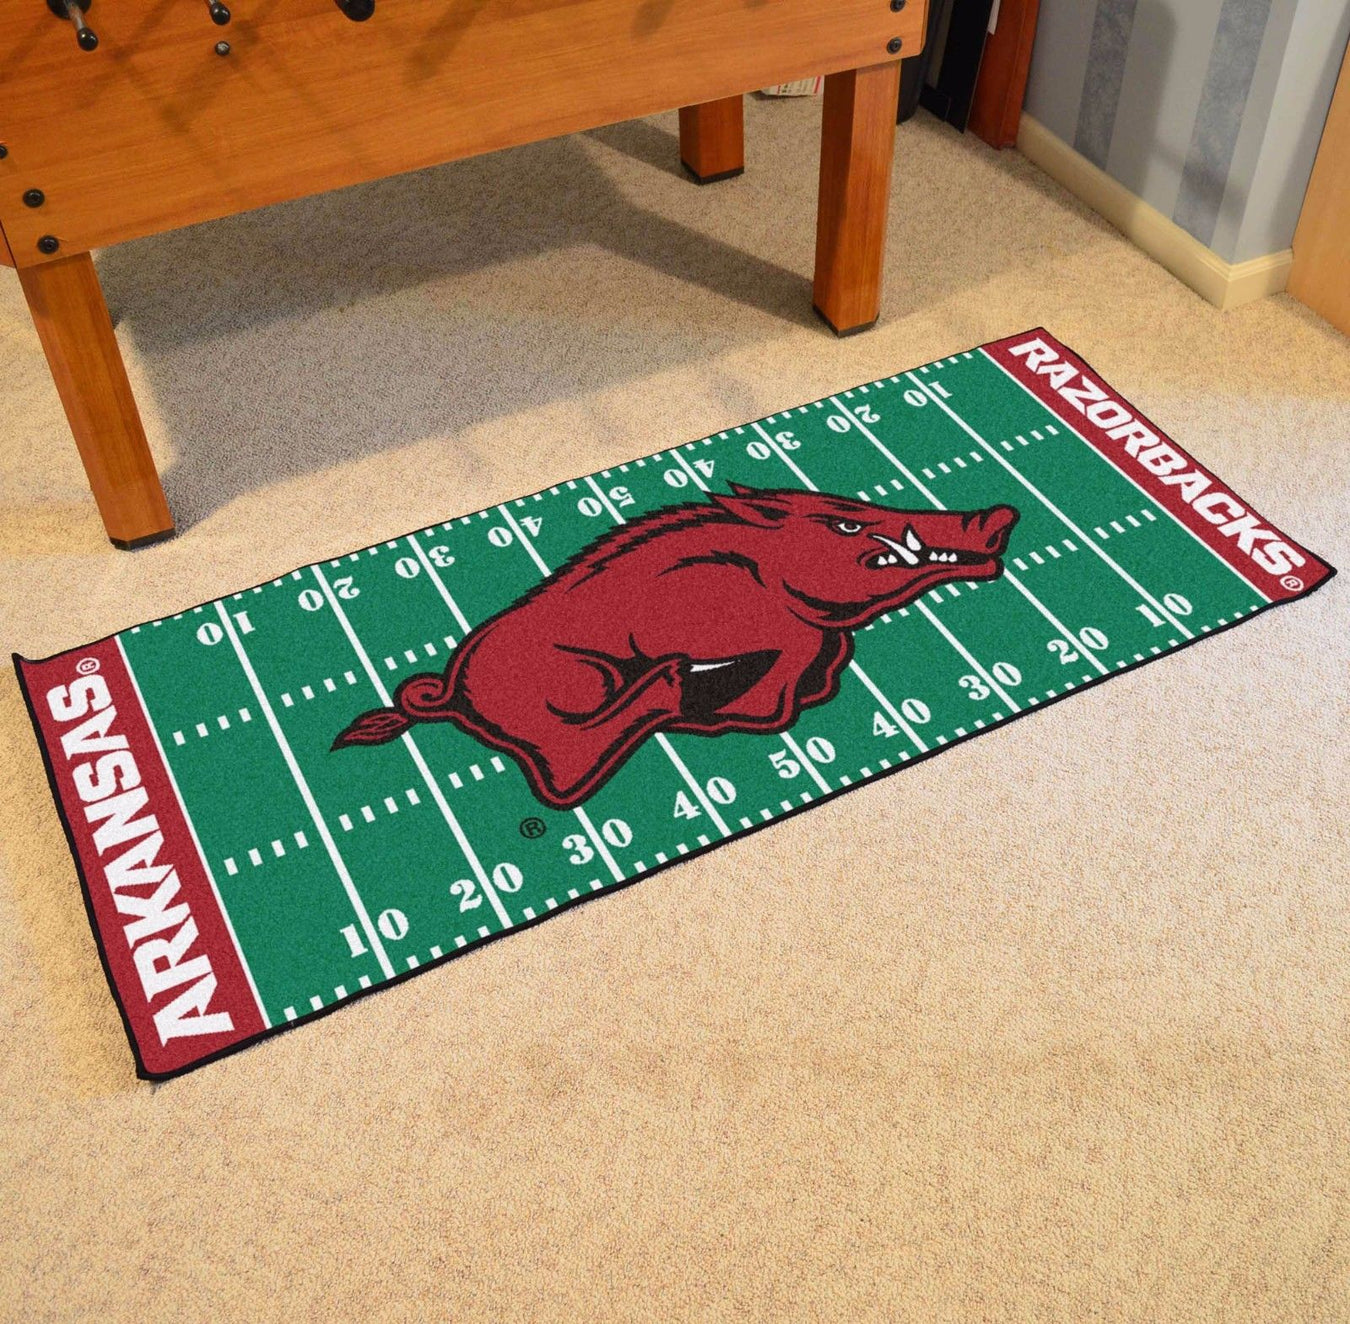 Shop now for NCAA man cave furniture and decor